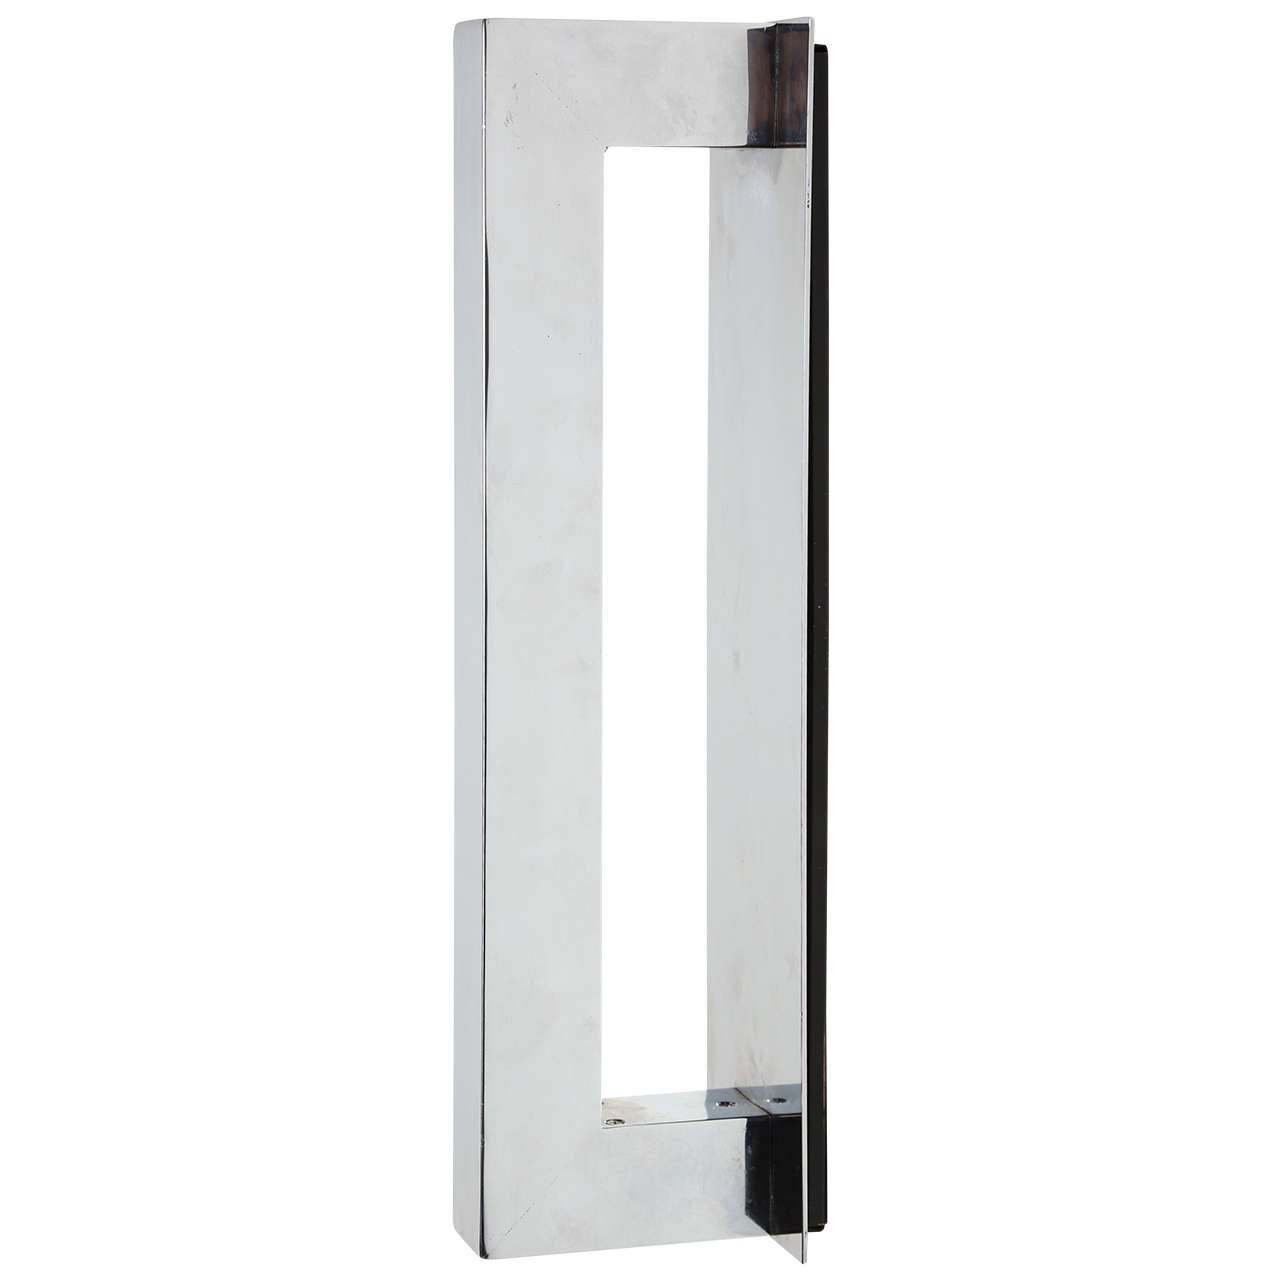 Vertical or Horizontal Chrome Sconce